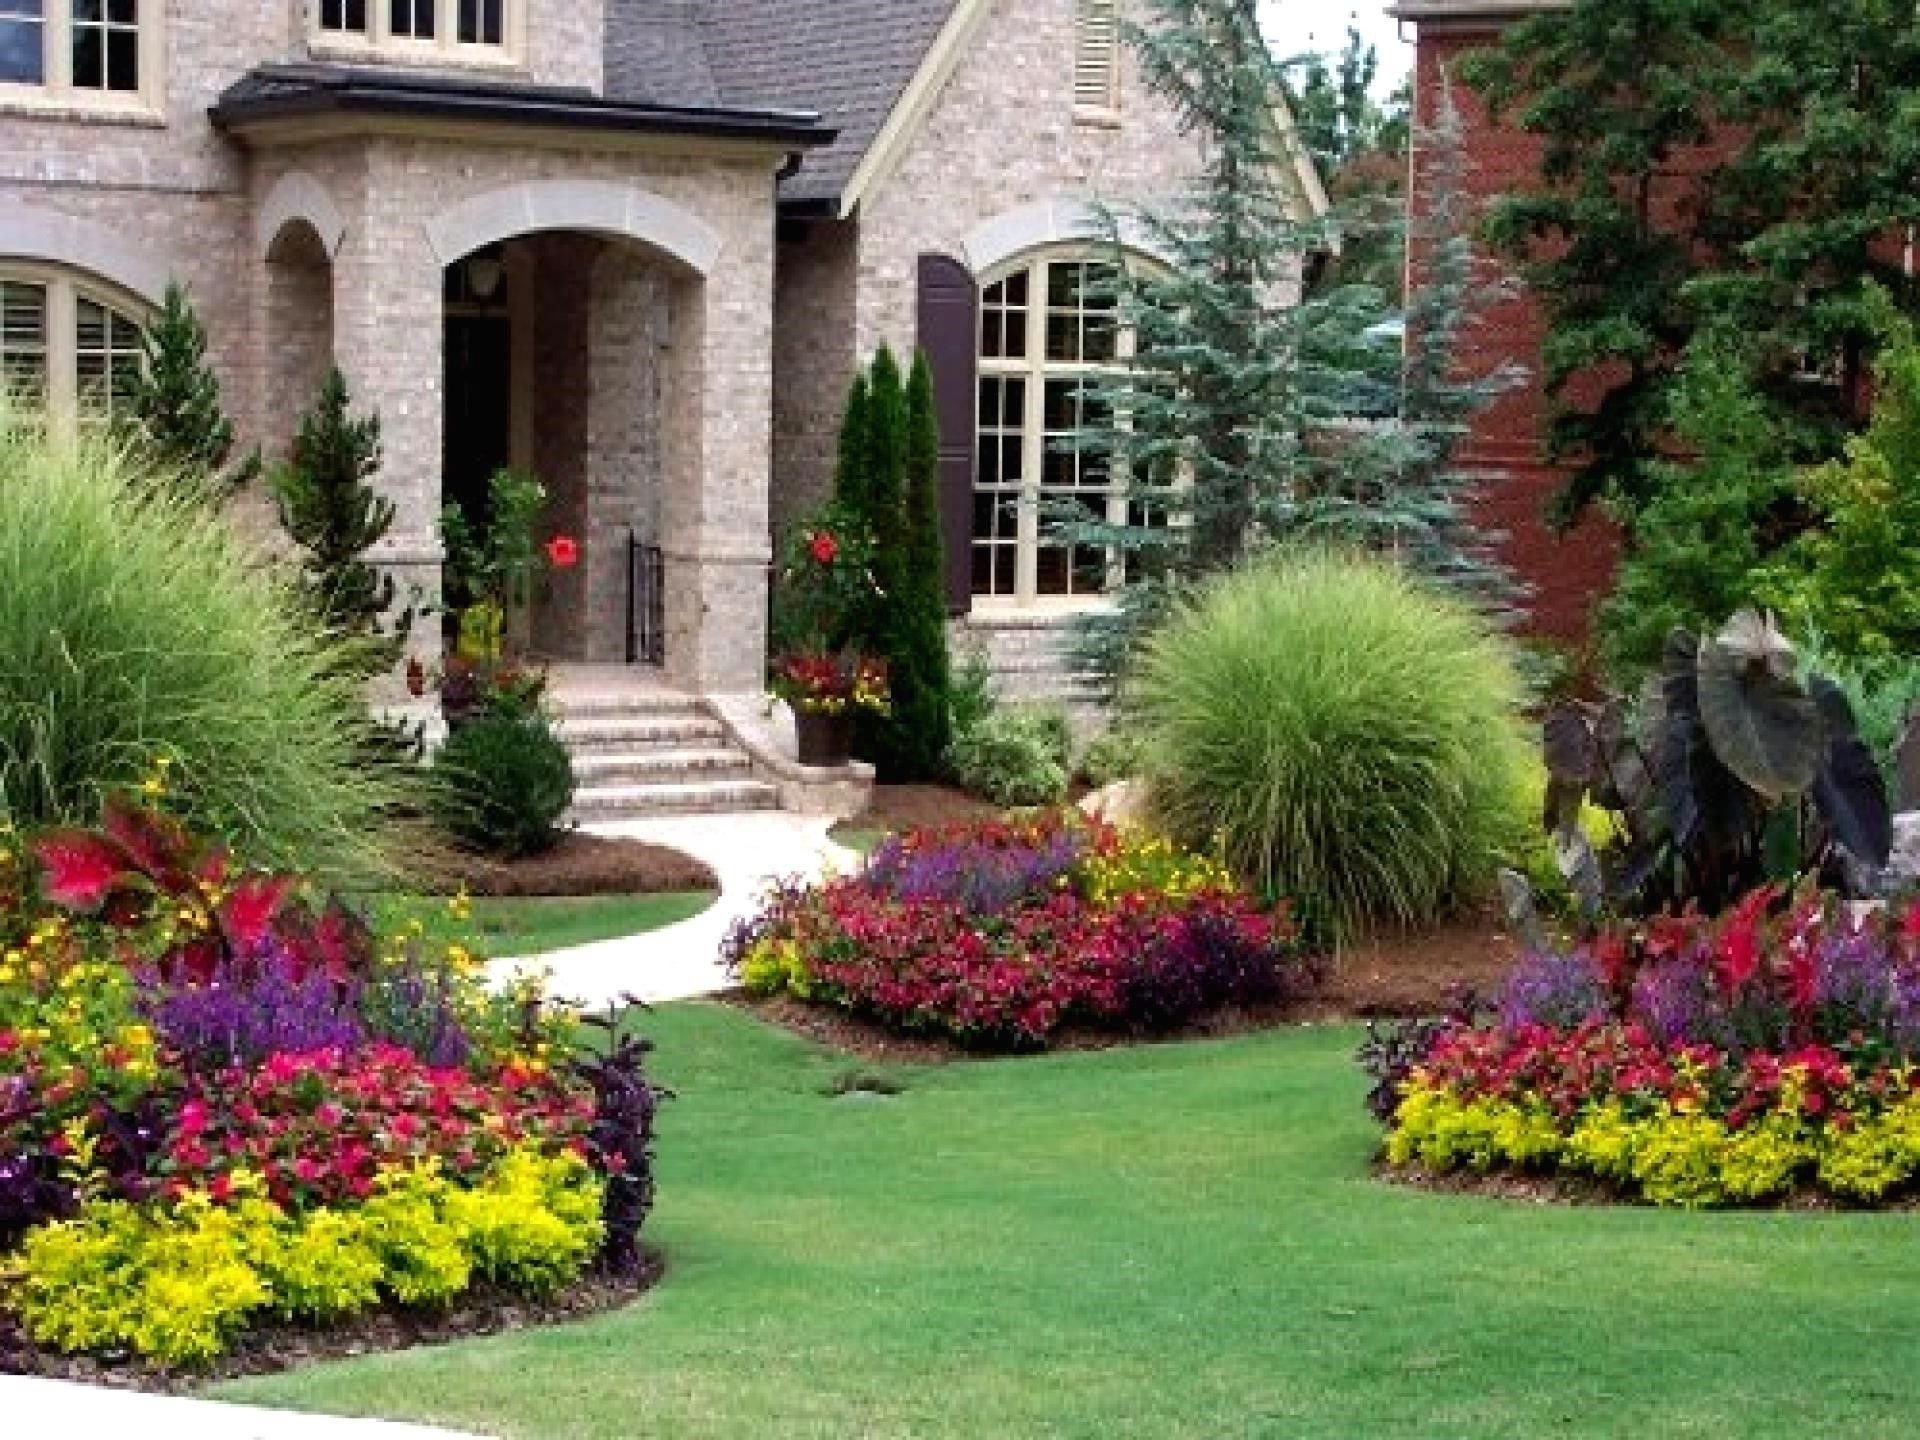 10 Lovable Front Of The House Landscaping Ideas landscaping ideas for front of house home plans 2020